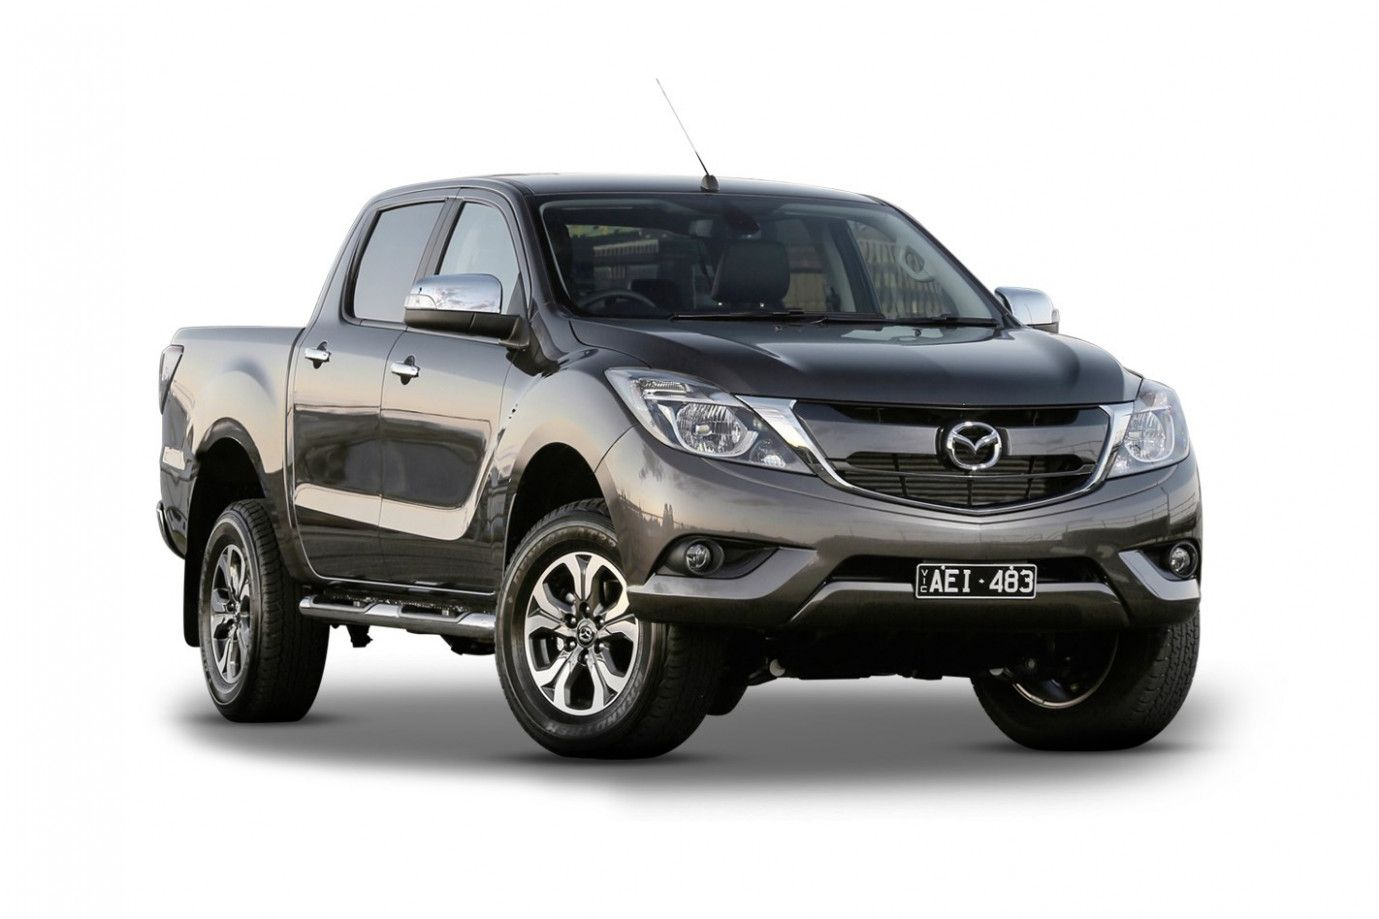 Mazda Bt 50 2020 Model Overview With Images Ford Ranger Mazda Car Review